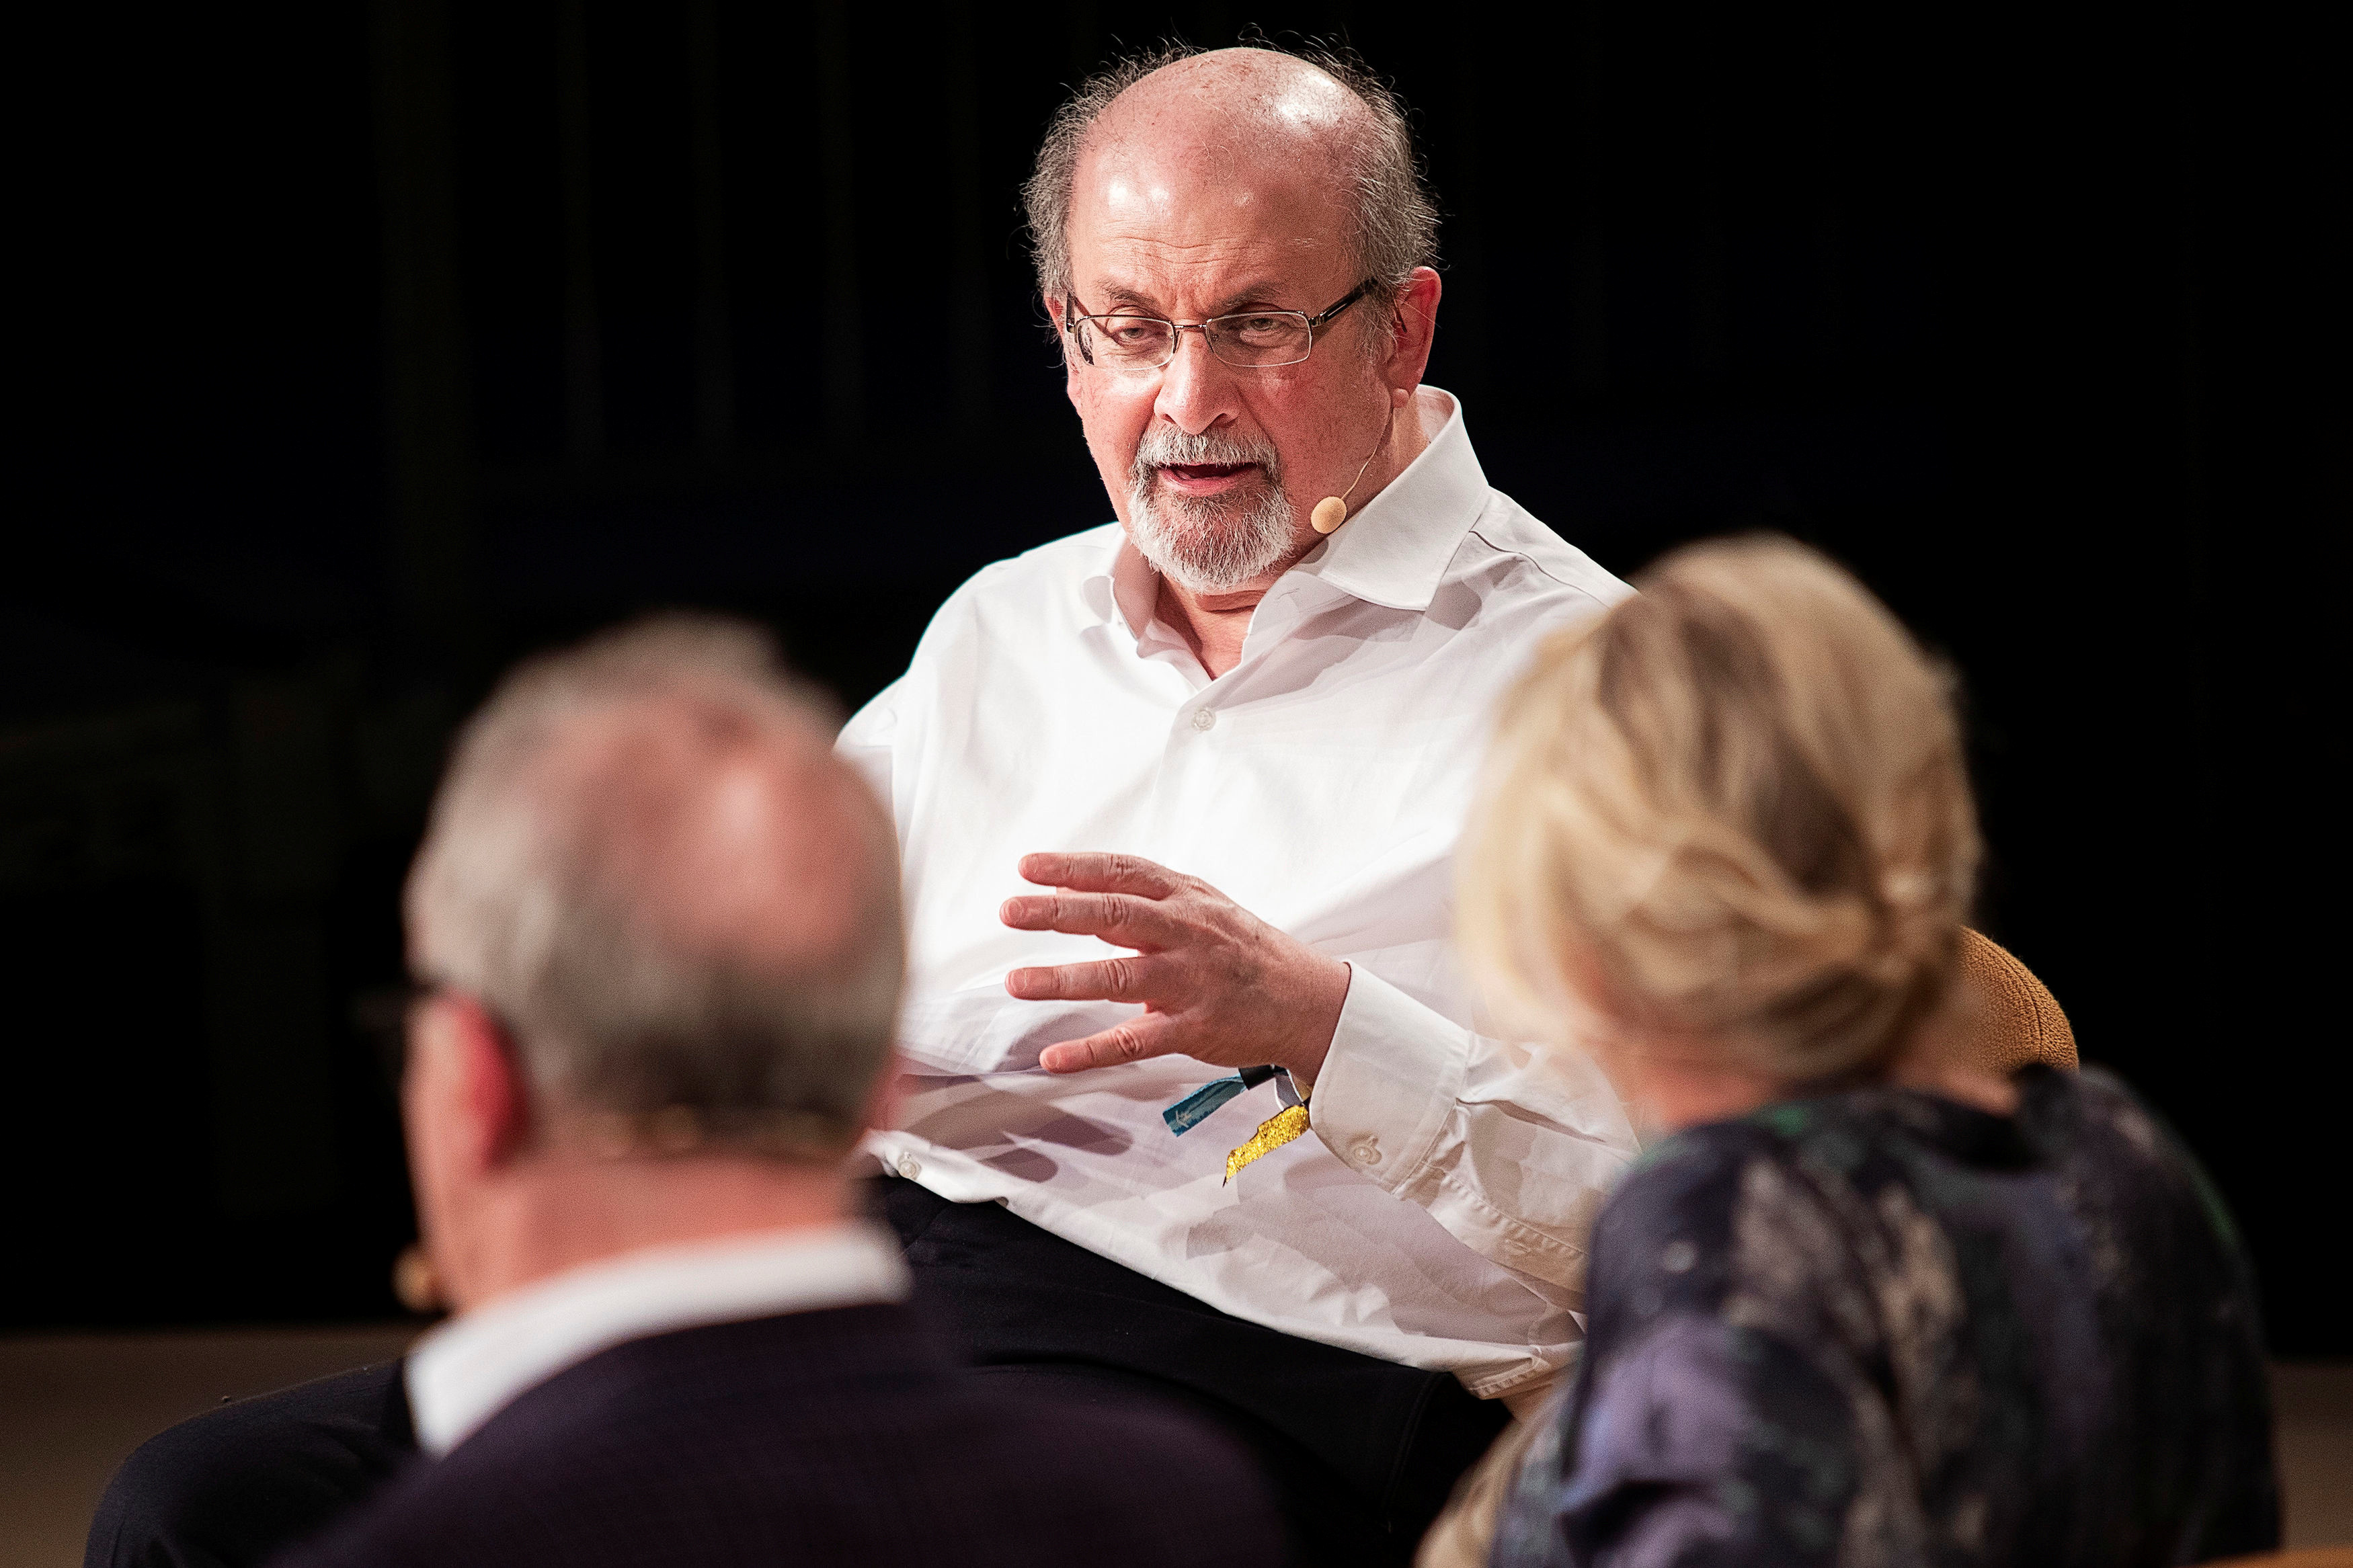 The writer Salman Rushdie interviewed during Heartland Festival in Kvaerndrup, Denmark  June 2, 2018. Carsten Bundgaard/Ritzau Scanpix/via REUTERS   ATTENTION EDITORS - THIS IMAGE WAS PROVIDED BY A THIRD PARTY. DENMARK OUT. NO COMMERCIAL OR EDITORIAL SALES IN DENMARK. - RC18A64504D0